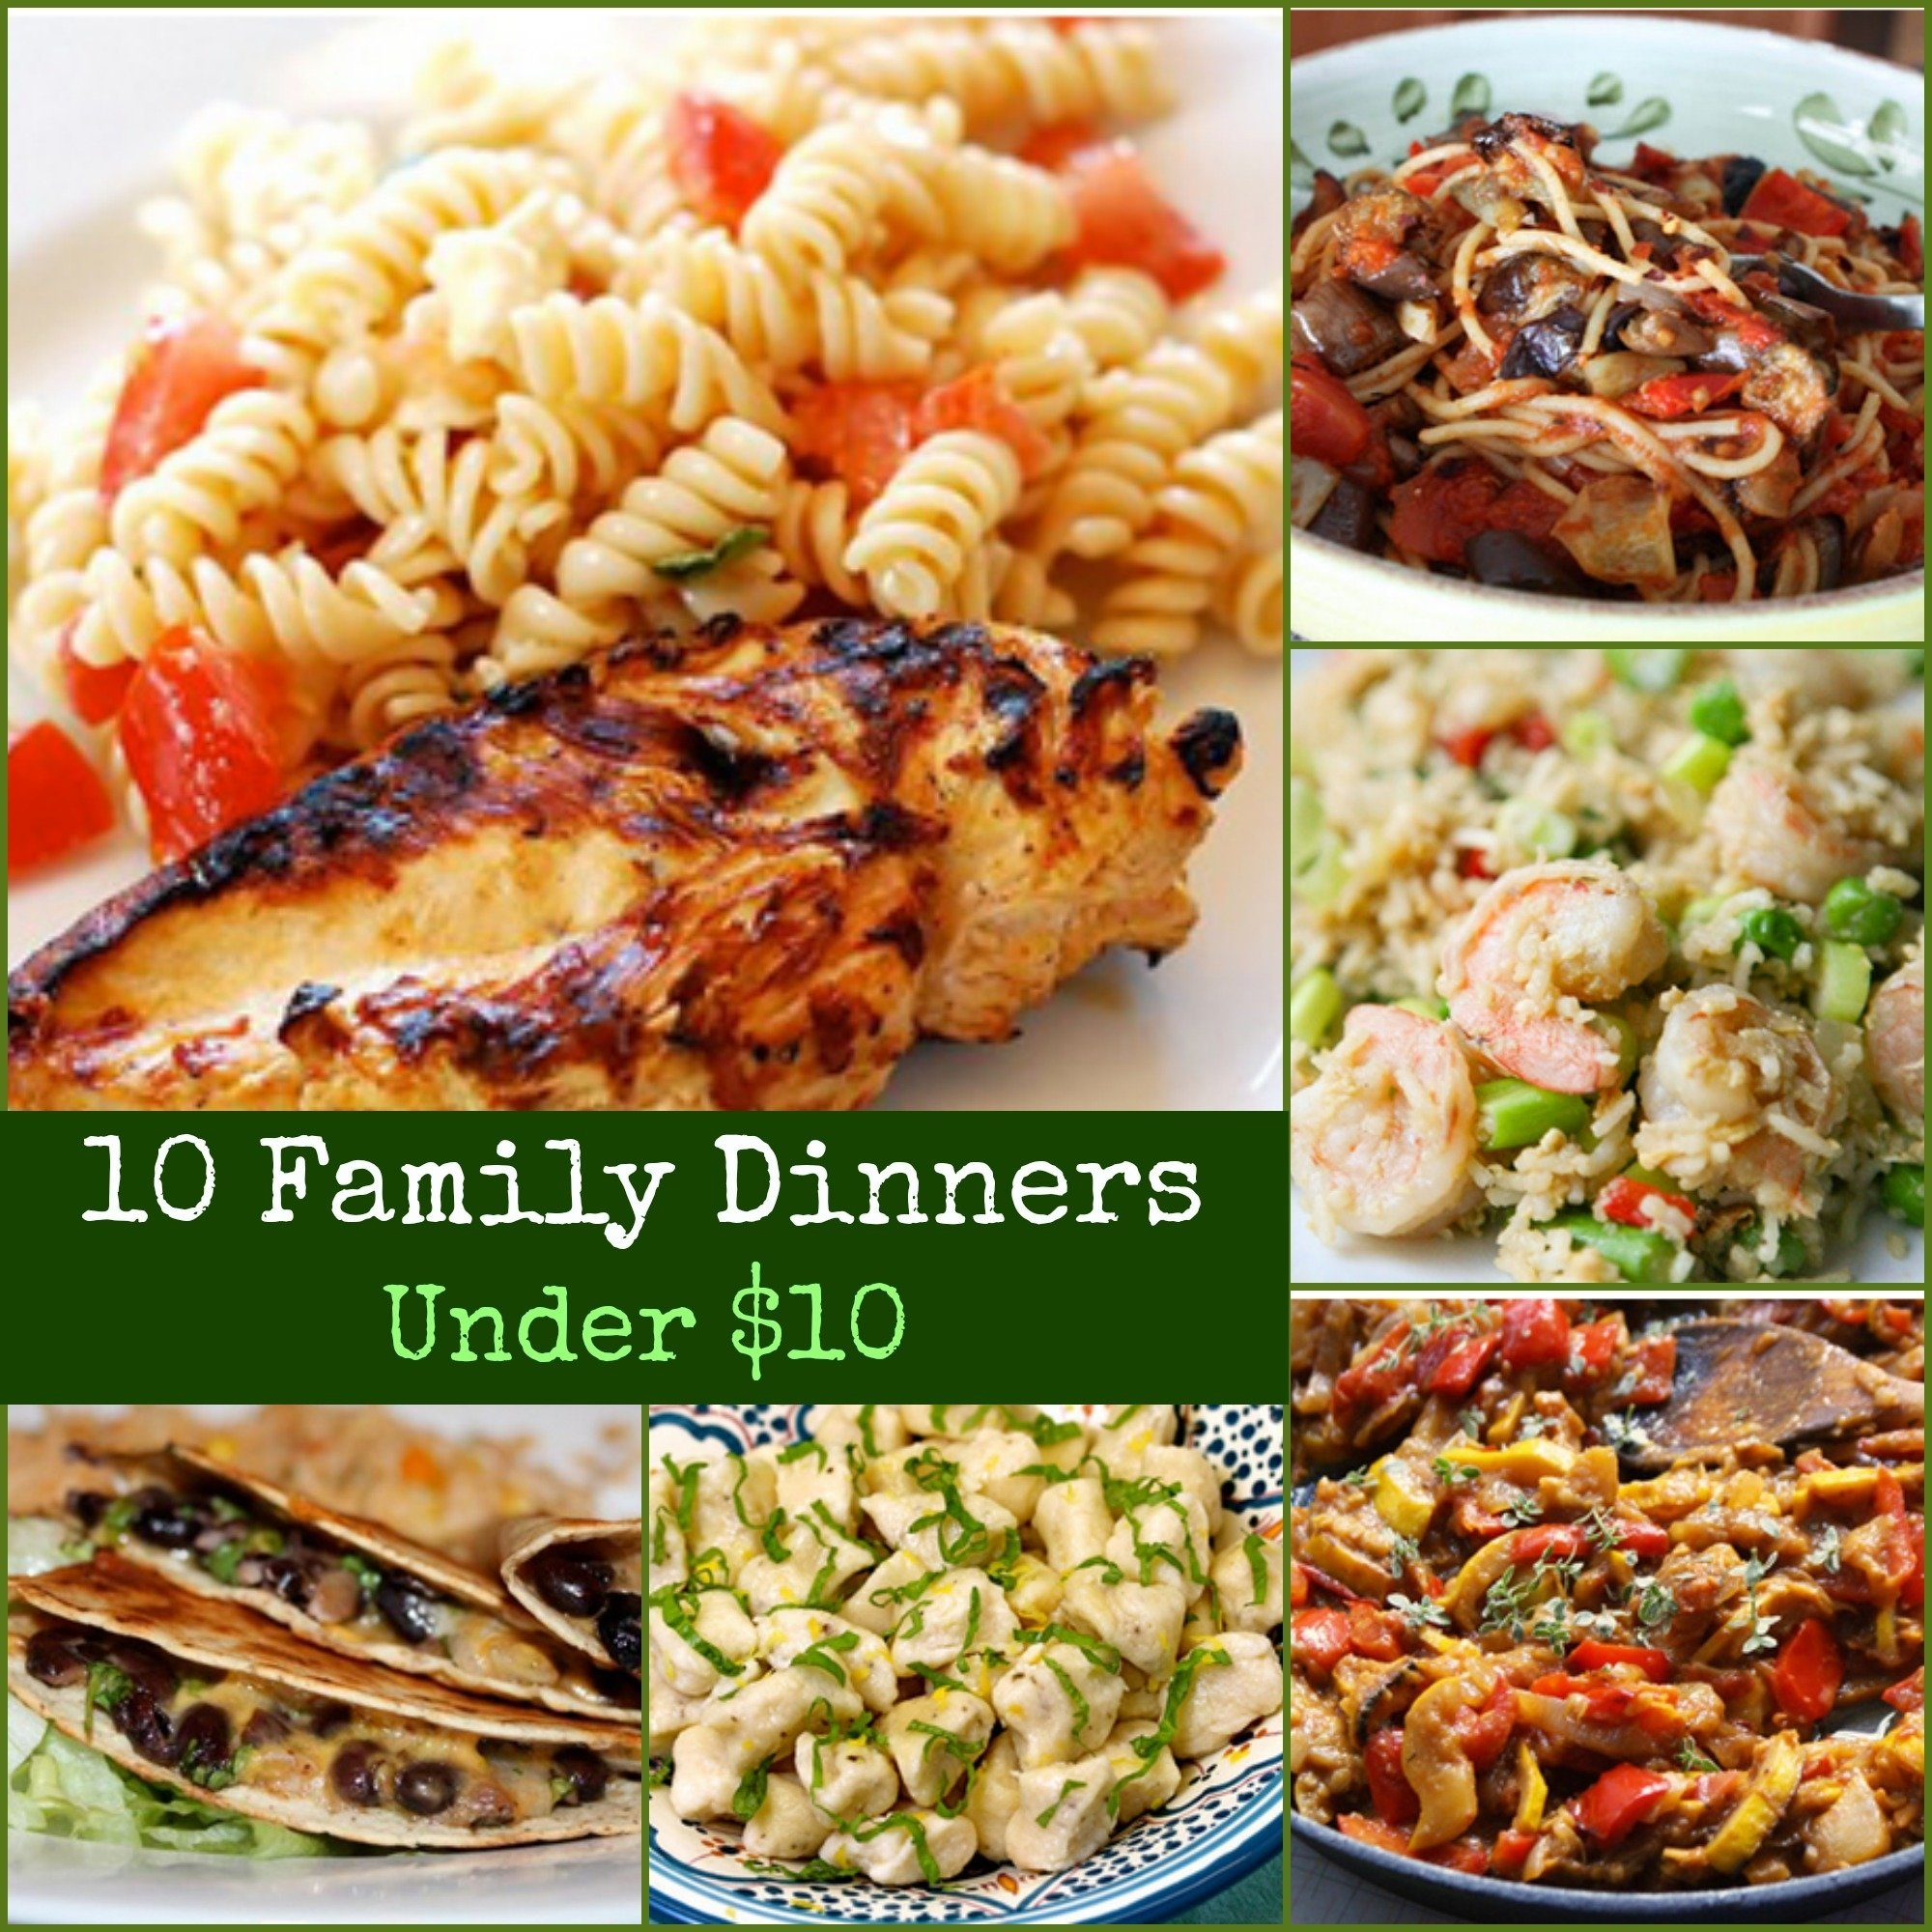 10 Fashionable Meal Ideas For Family Of 4 download quick easy recipes for dinner for the family food photos 5 2020